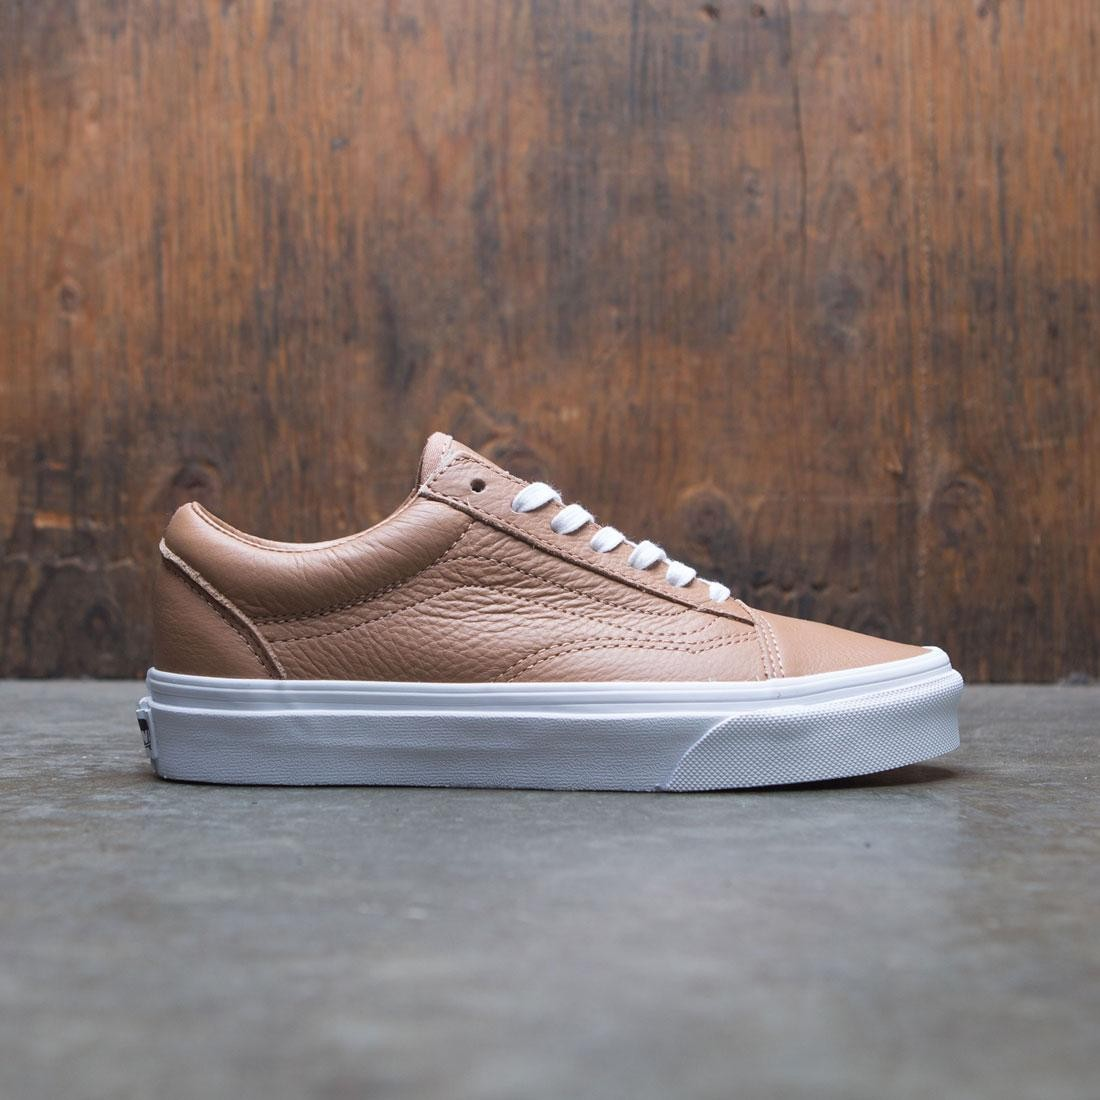 Vans Women Old Skool - Tawny Leather brown true white c821f7dca